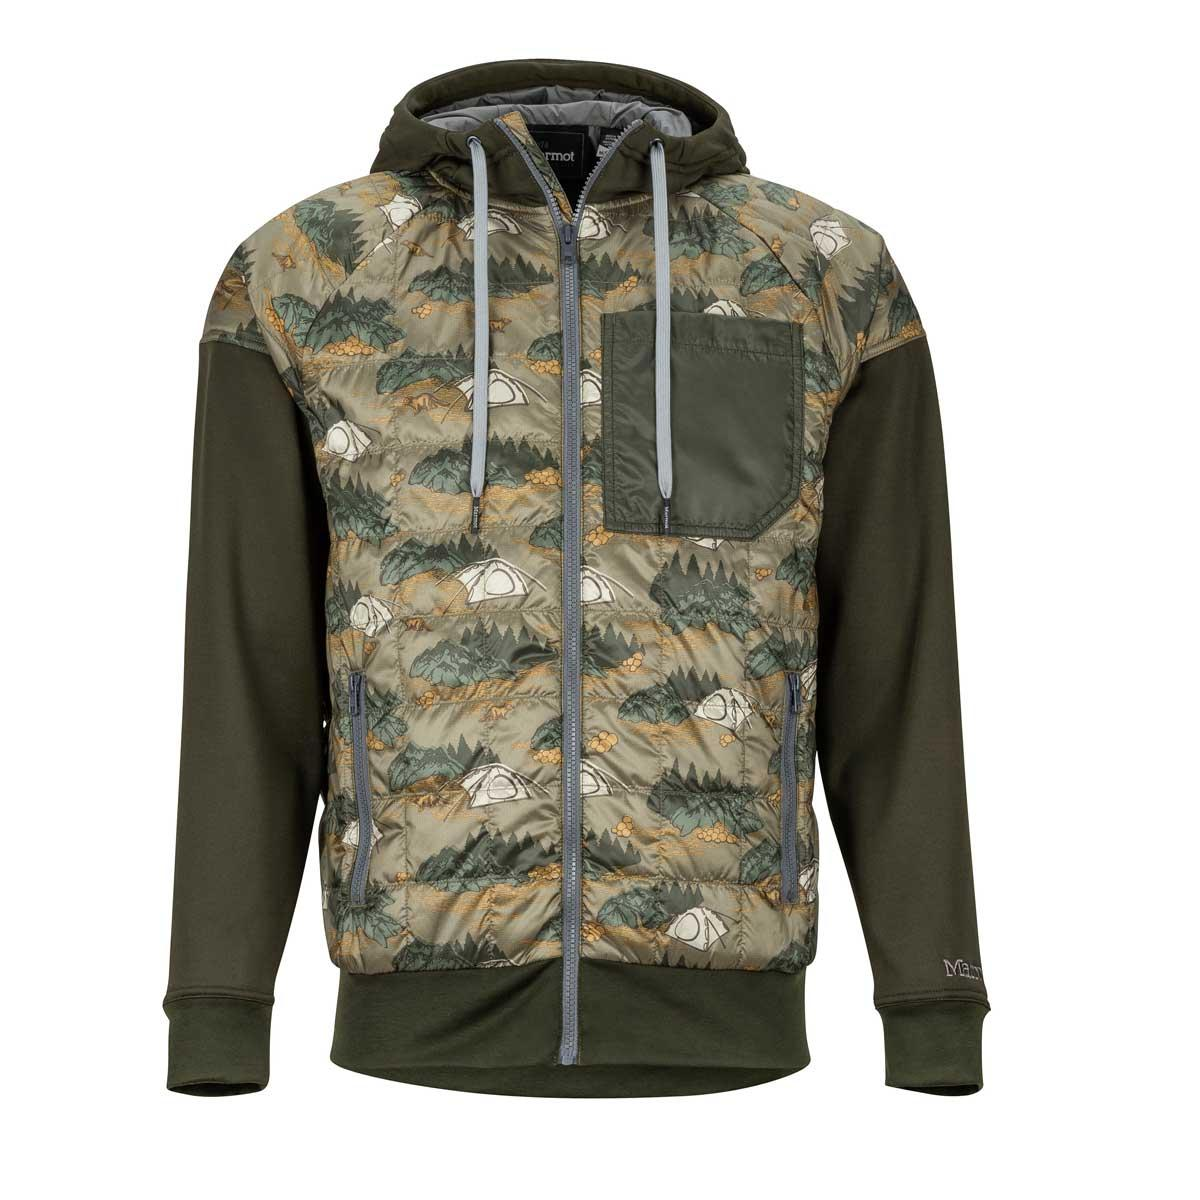 Marmot Men's Martis Peak Hoody in Camo and Rosin Green